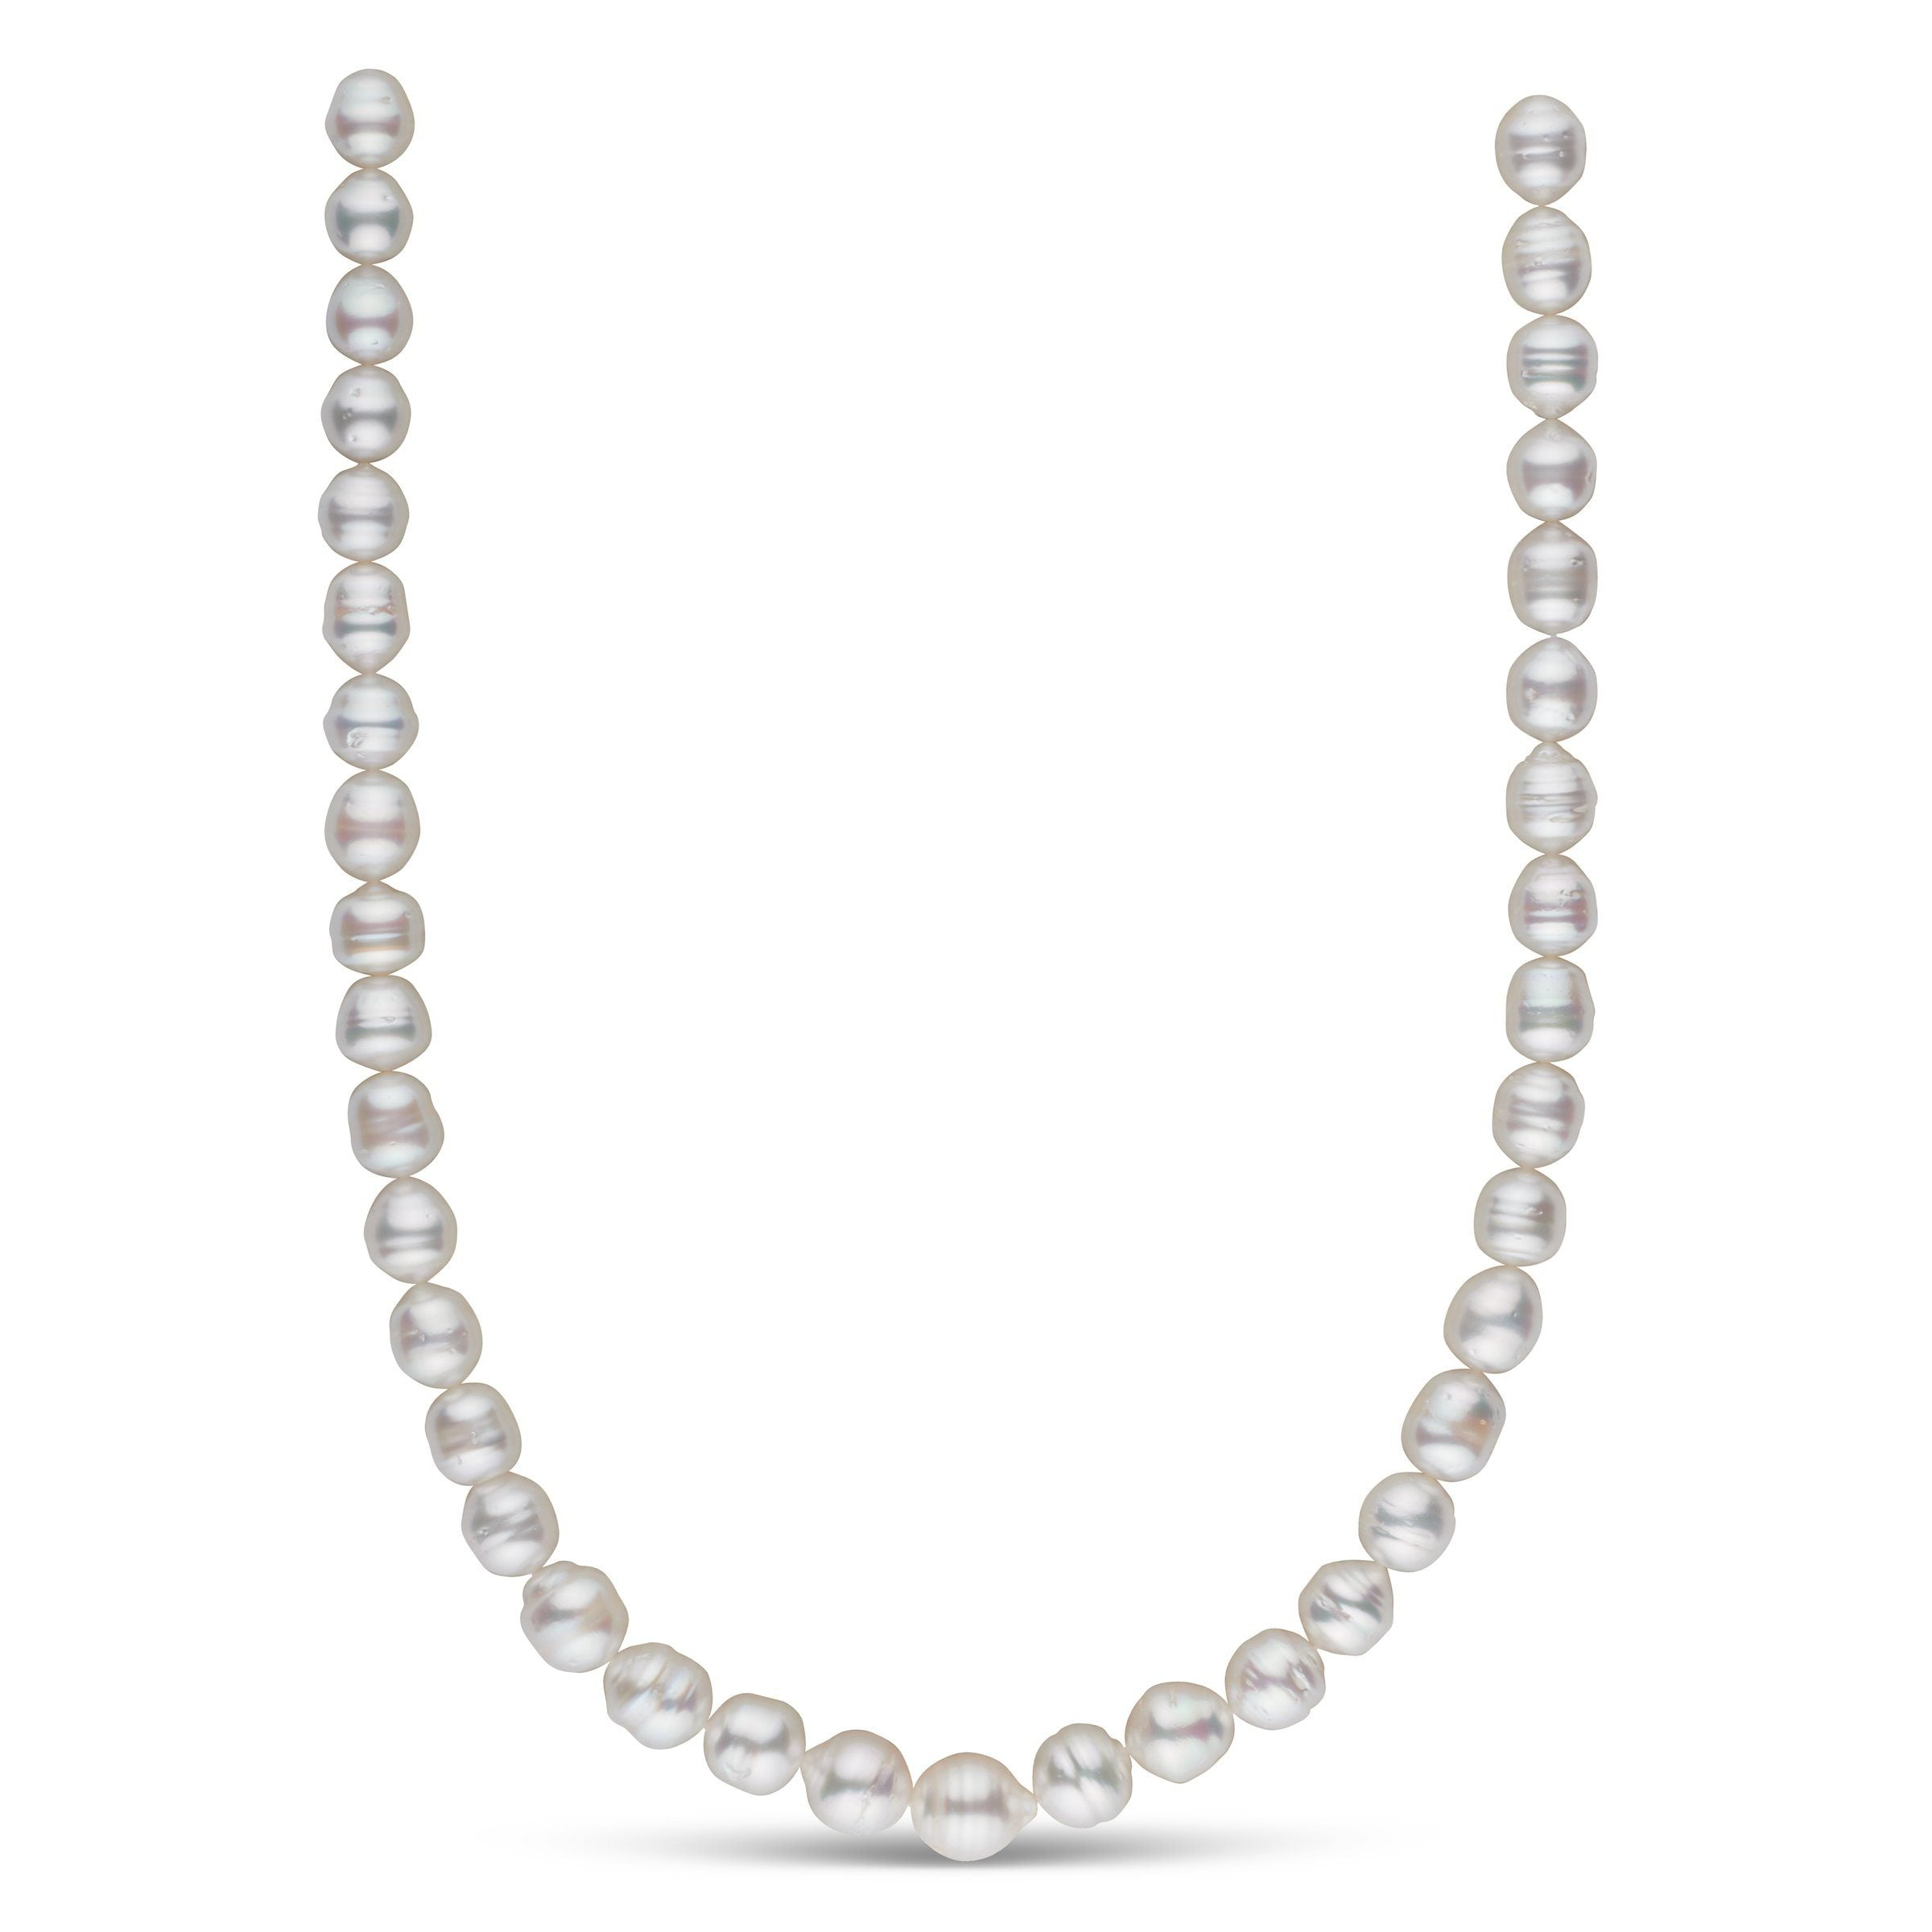 9.1-11.3 mm AA+/AAA White South Sea Baroque Necklace